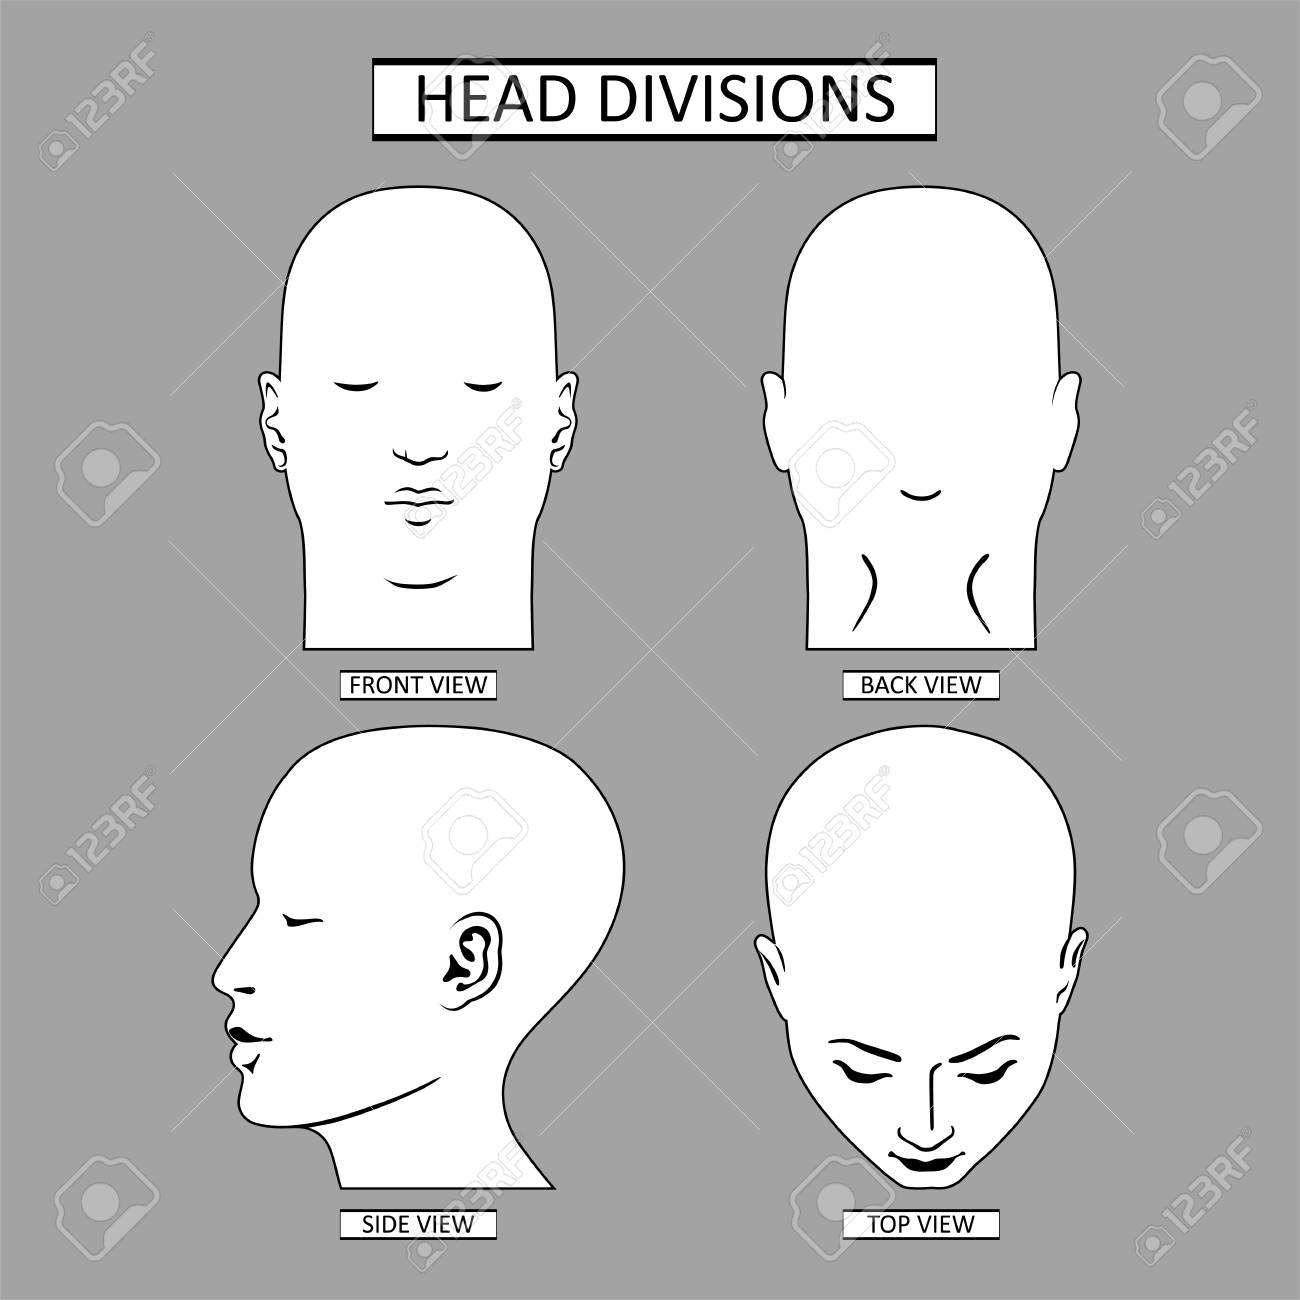 Man head divisions scheme template front, back, top, side views,..